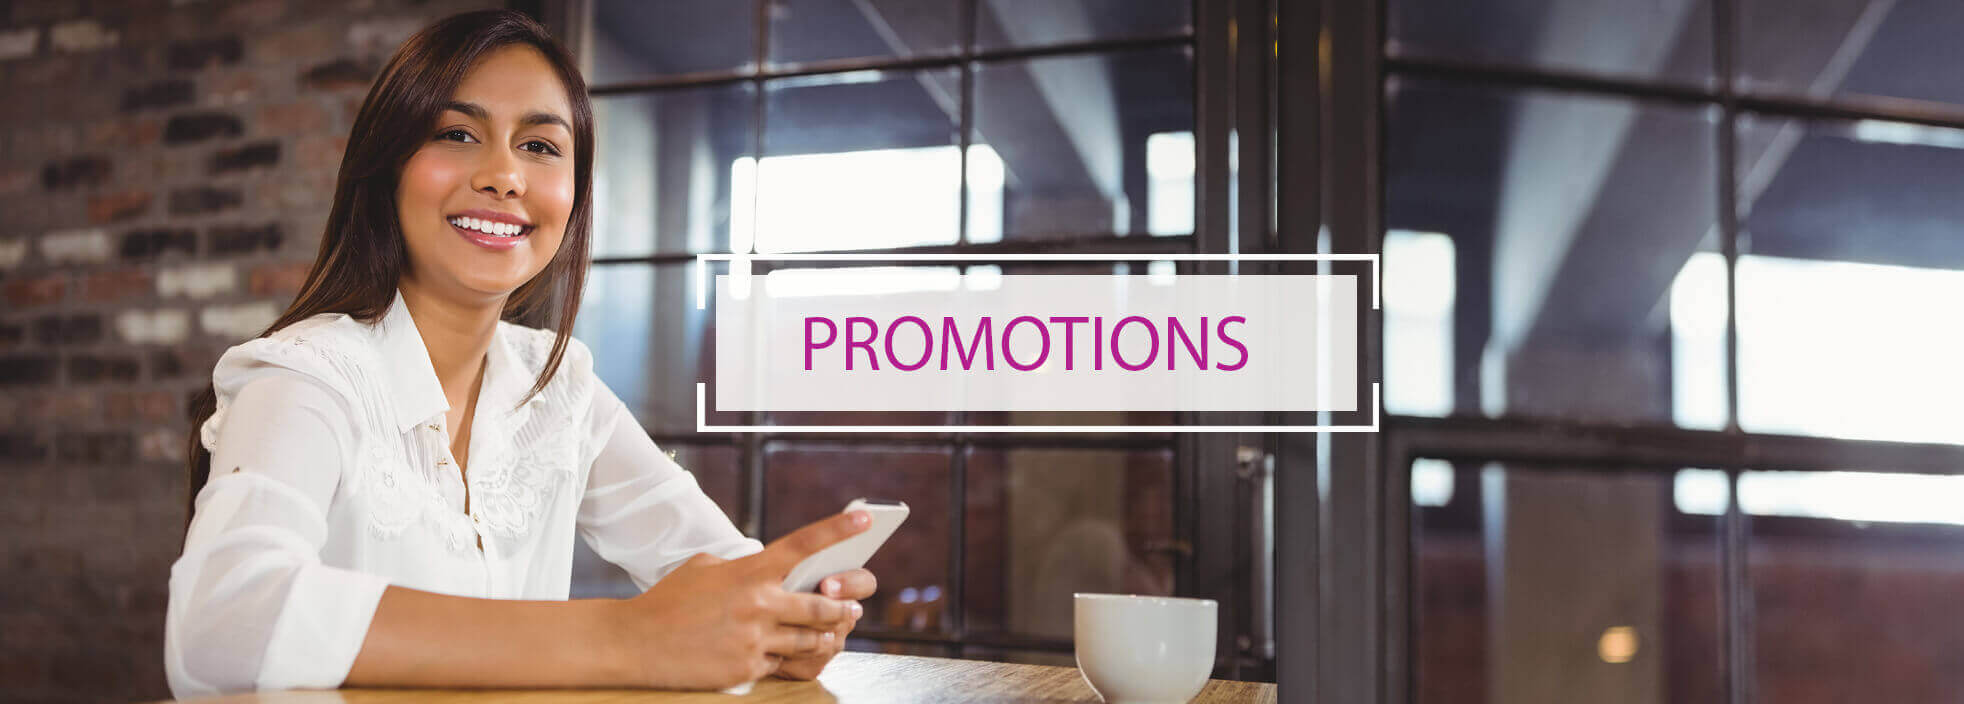 Promotions Furniture Loan